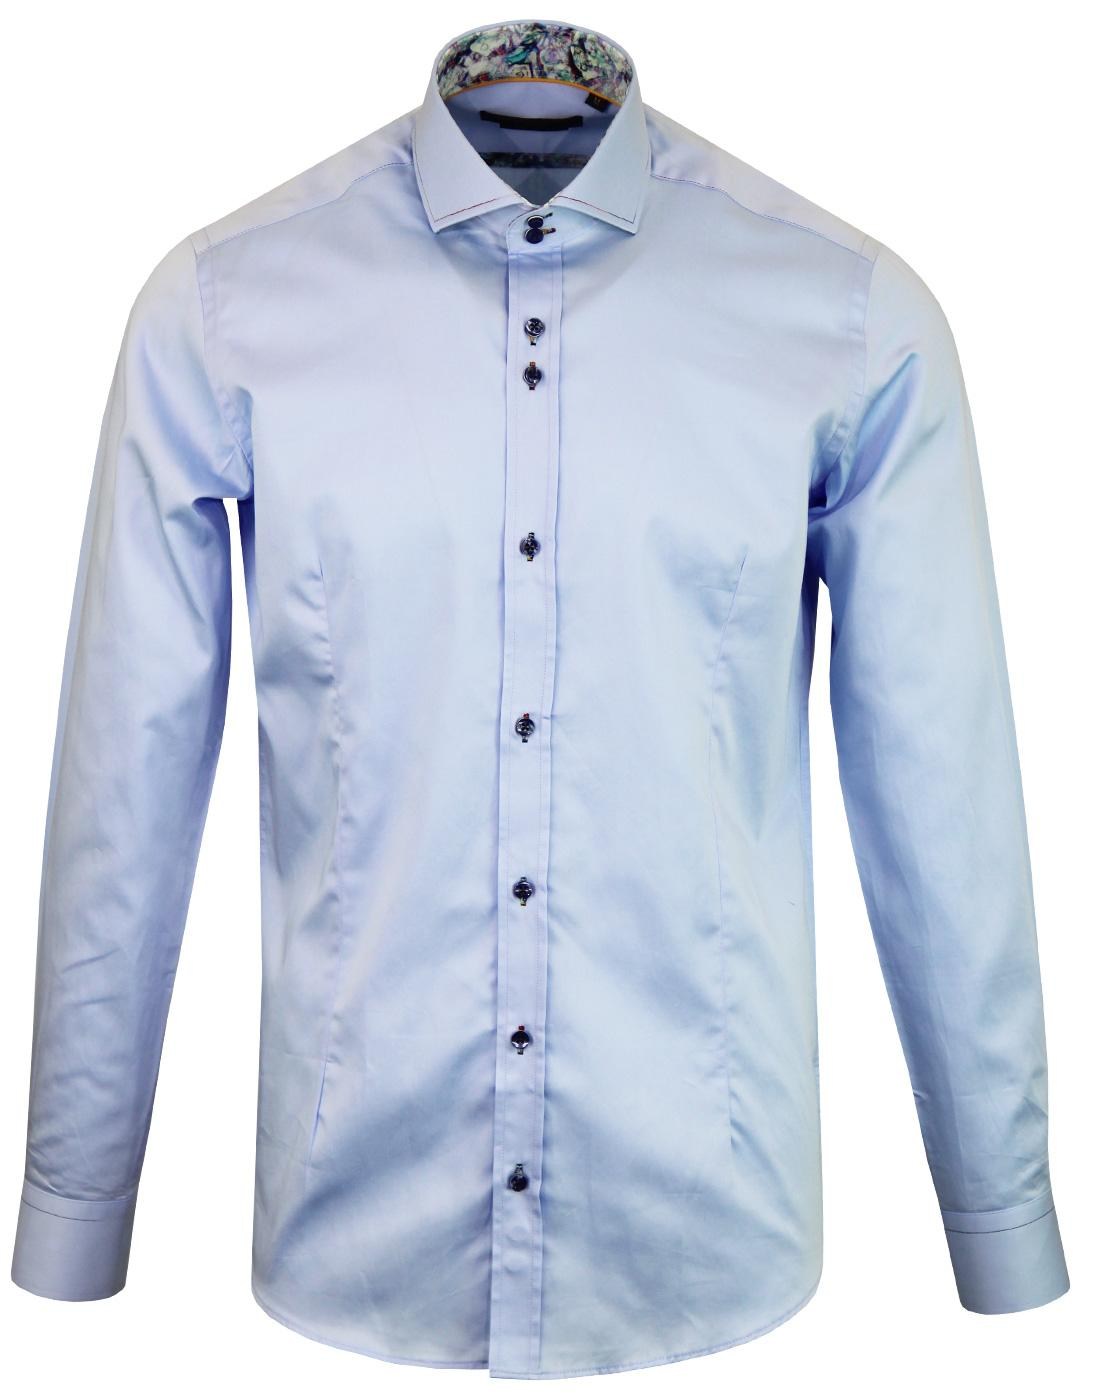 GUIDE LONDON Rainbow Stitch Smart Mod Shirt SKY